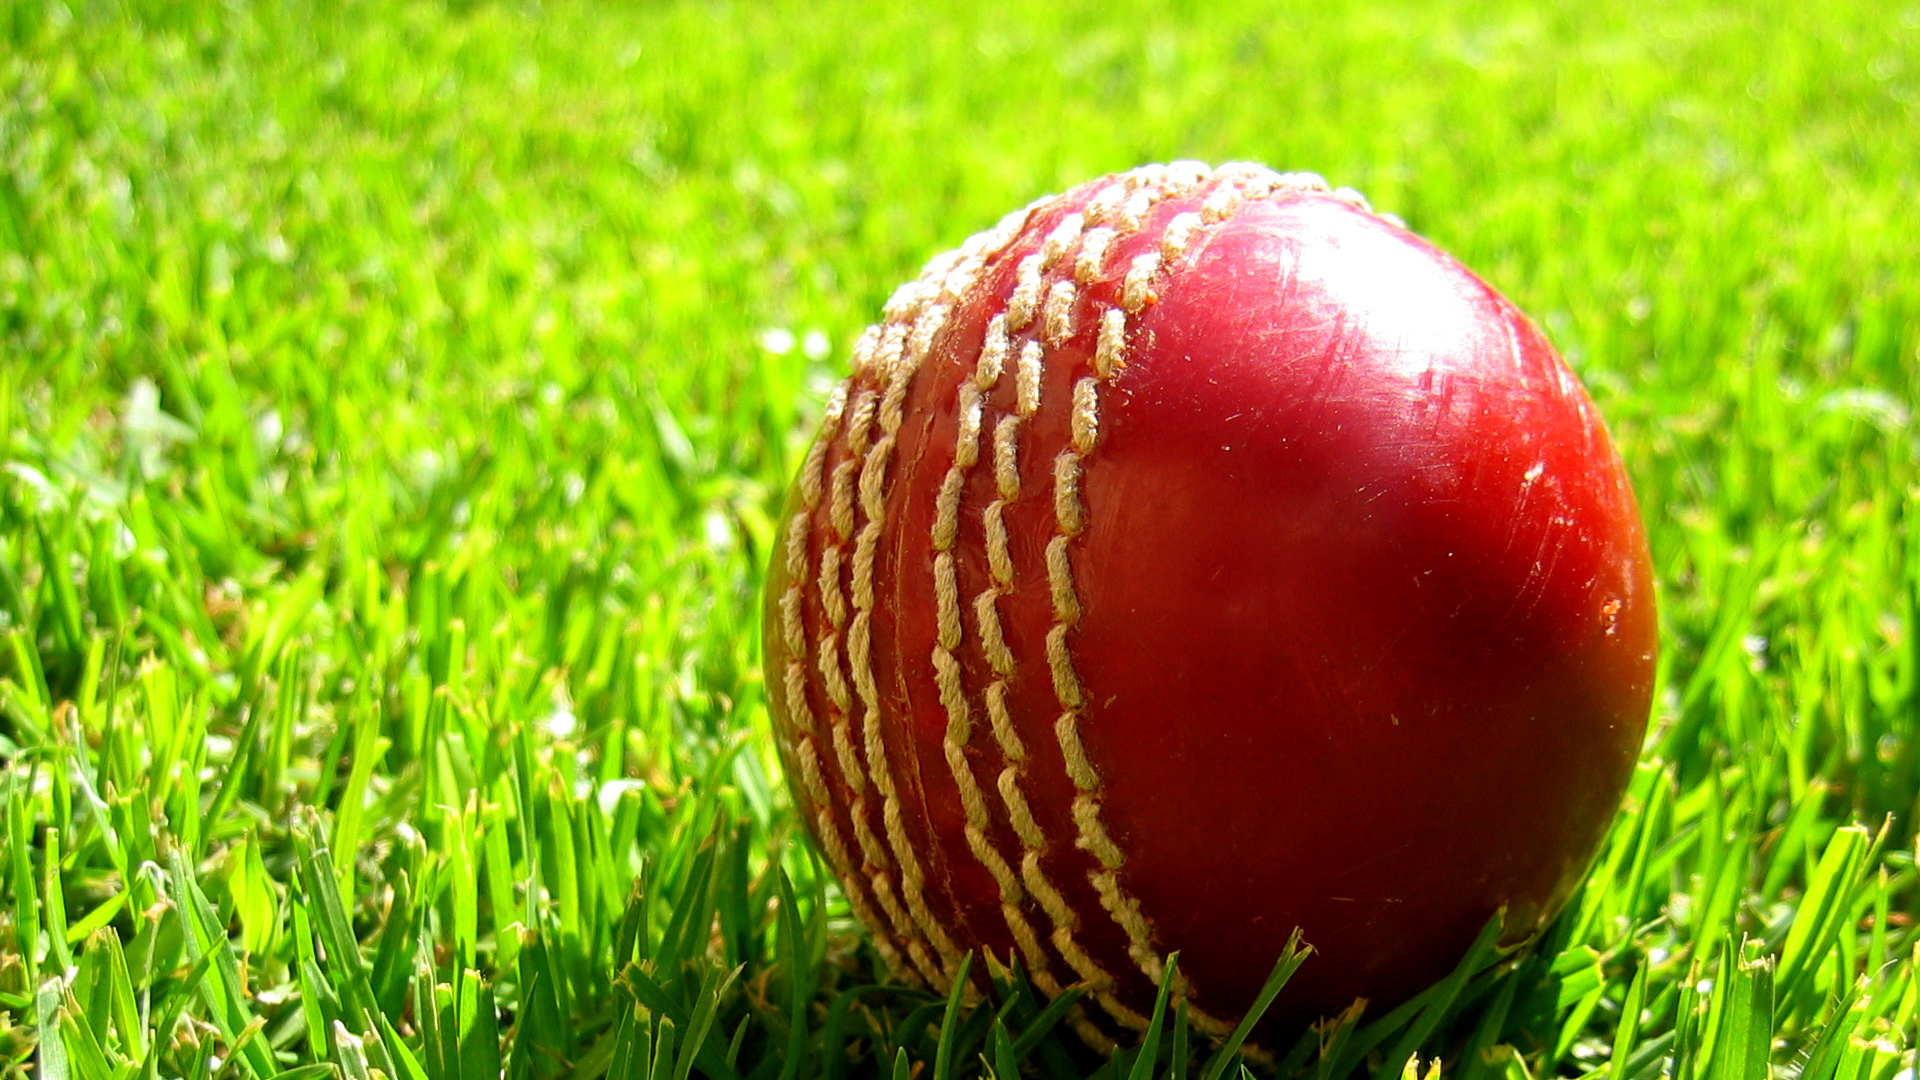 latest hd images for mobile tablet cricket ball